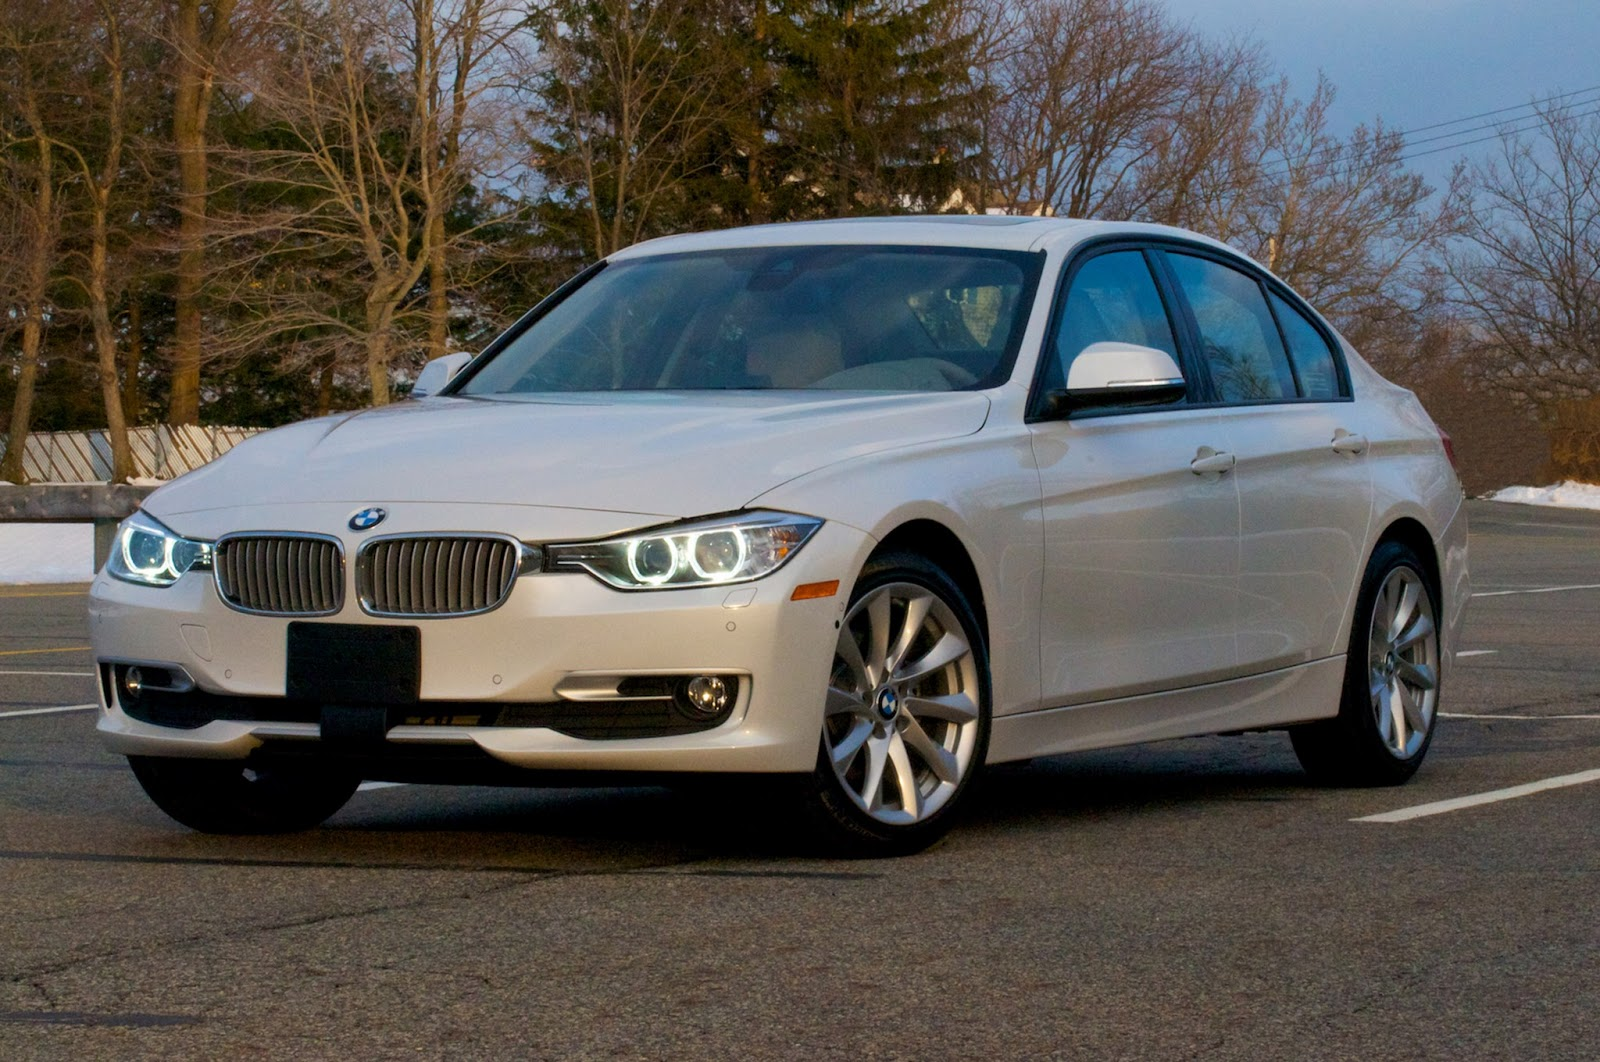 2014 bmw 3 series f30 328d sedan pictures interiors and exteriors. Cars Review. Best American Auto & Cars Review